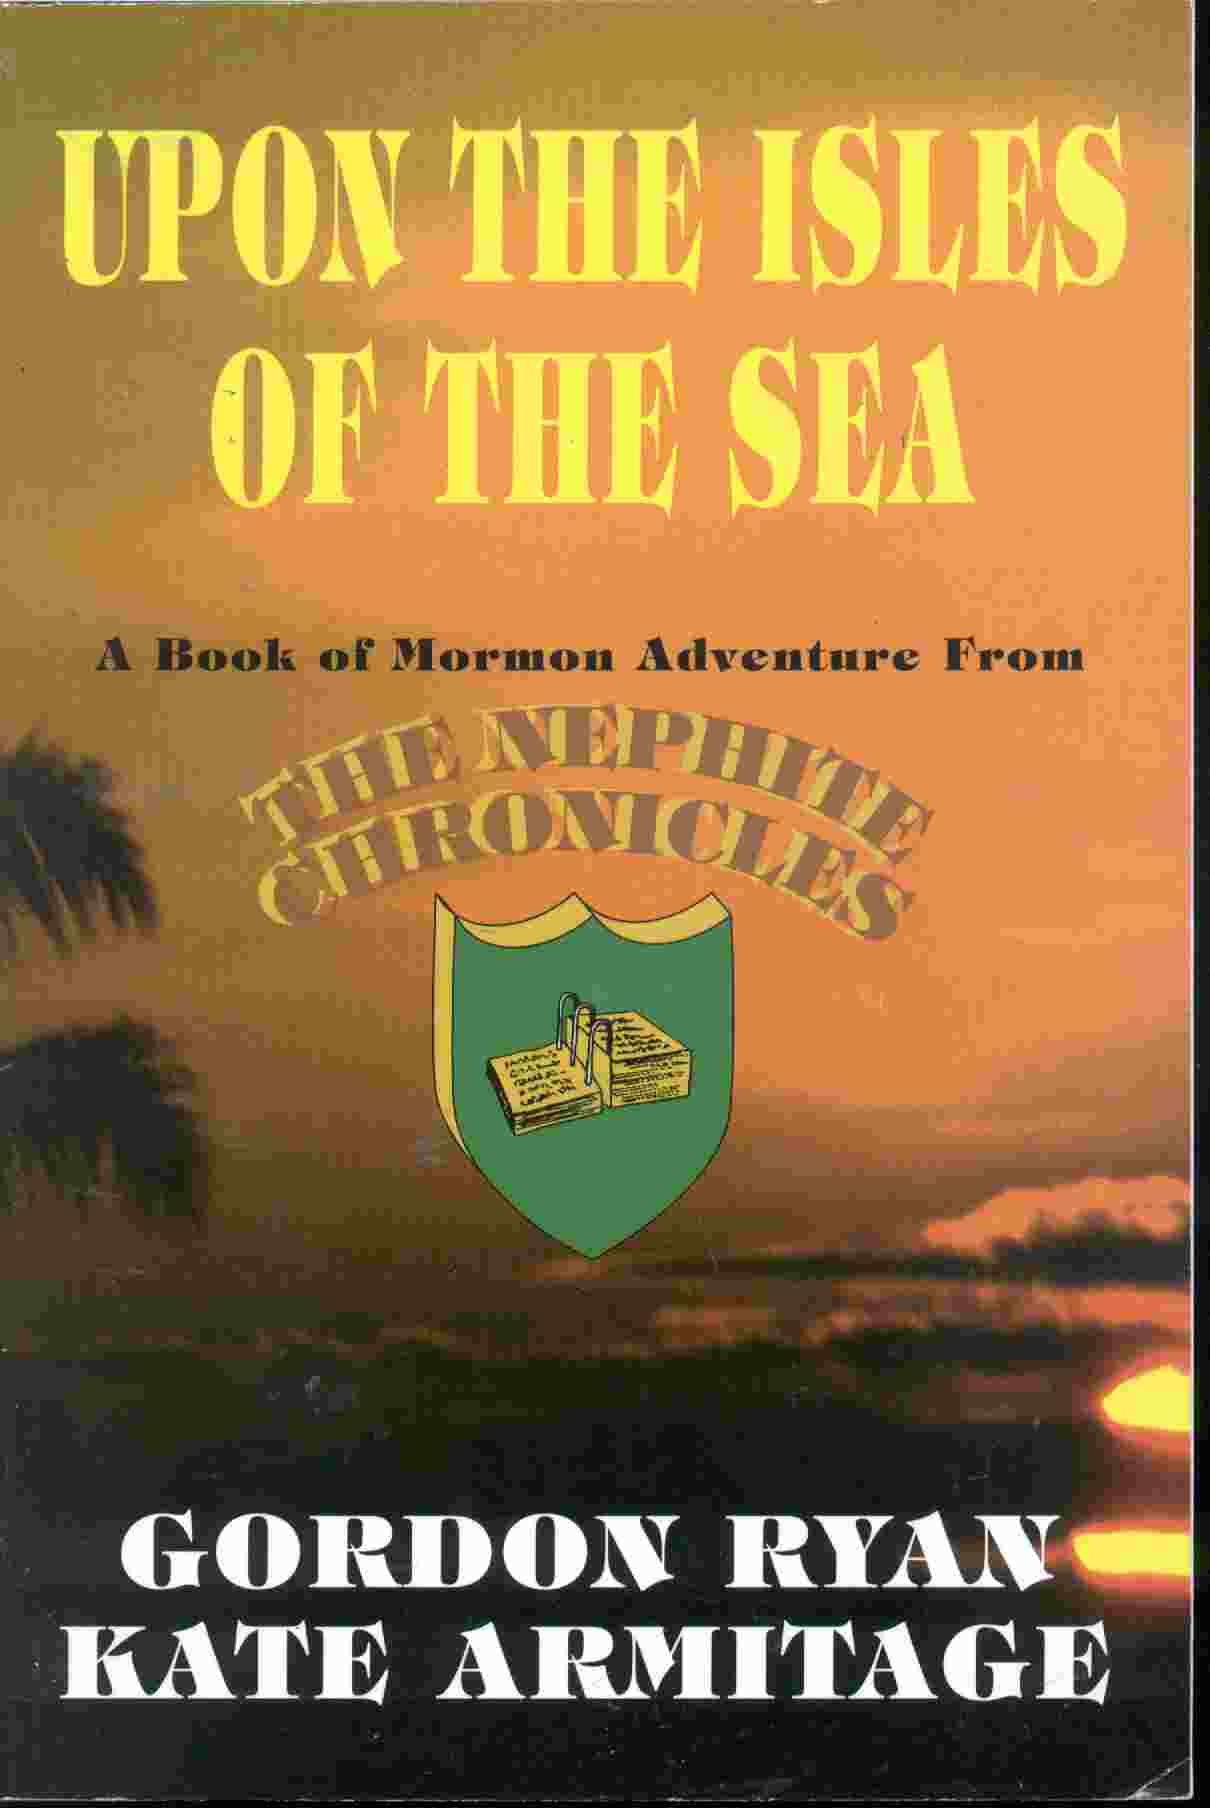 Image for UPON THE ISLES OF THE SEA - A Book of Mormon Adventure